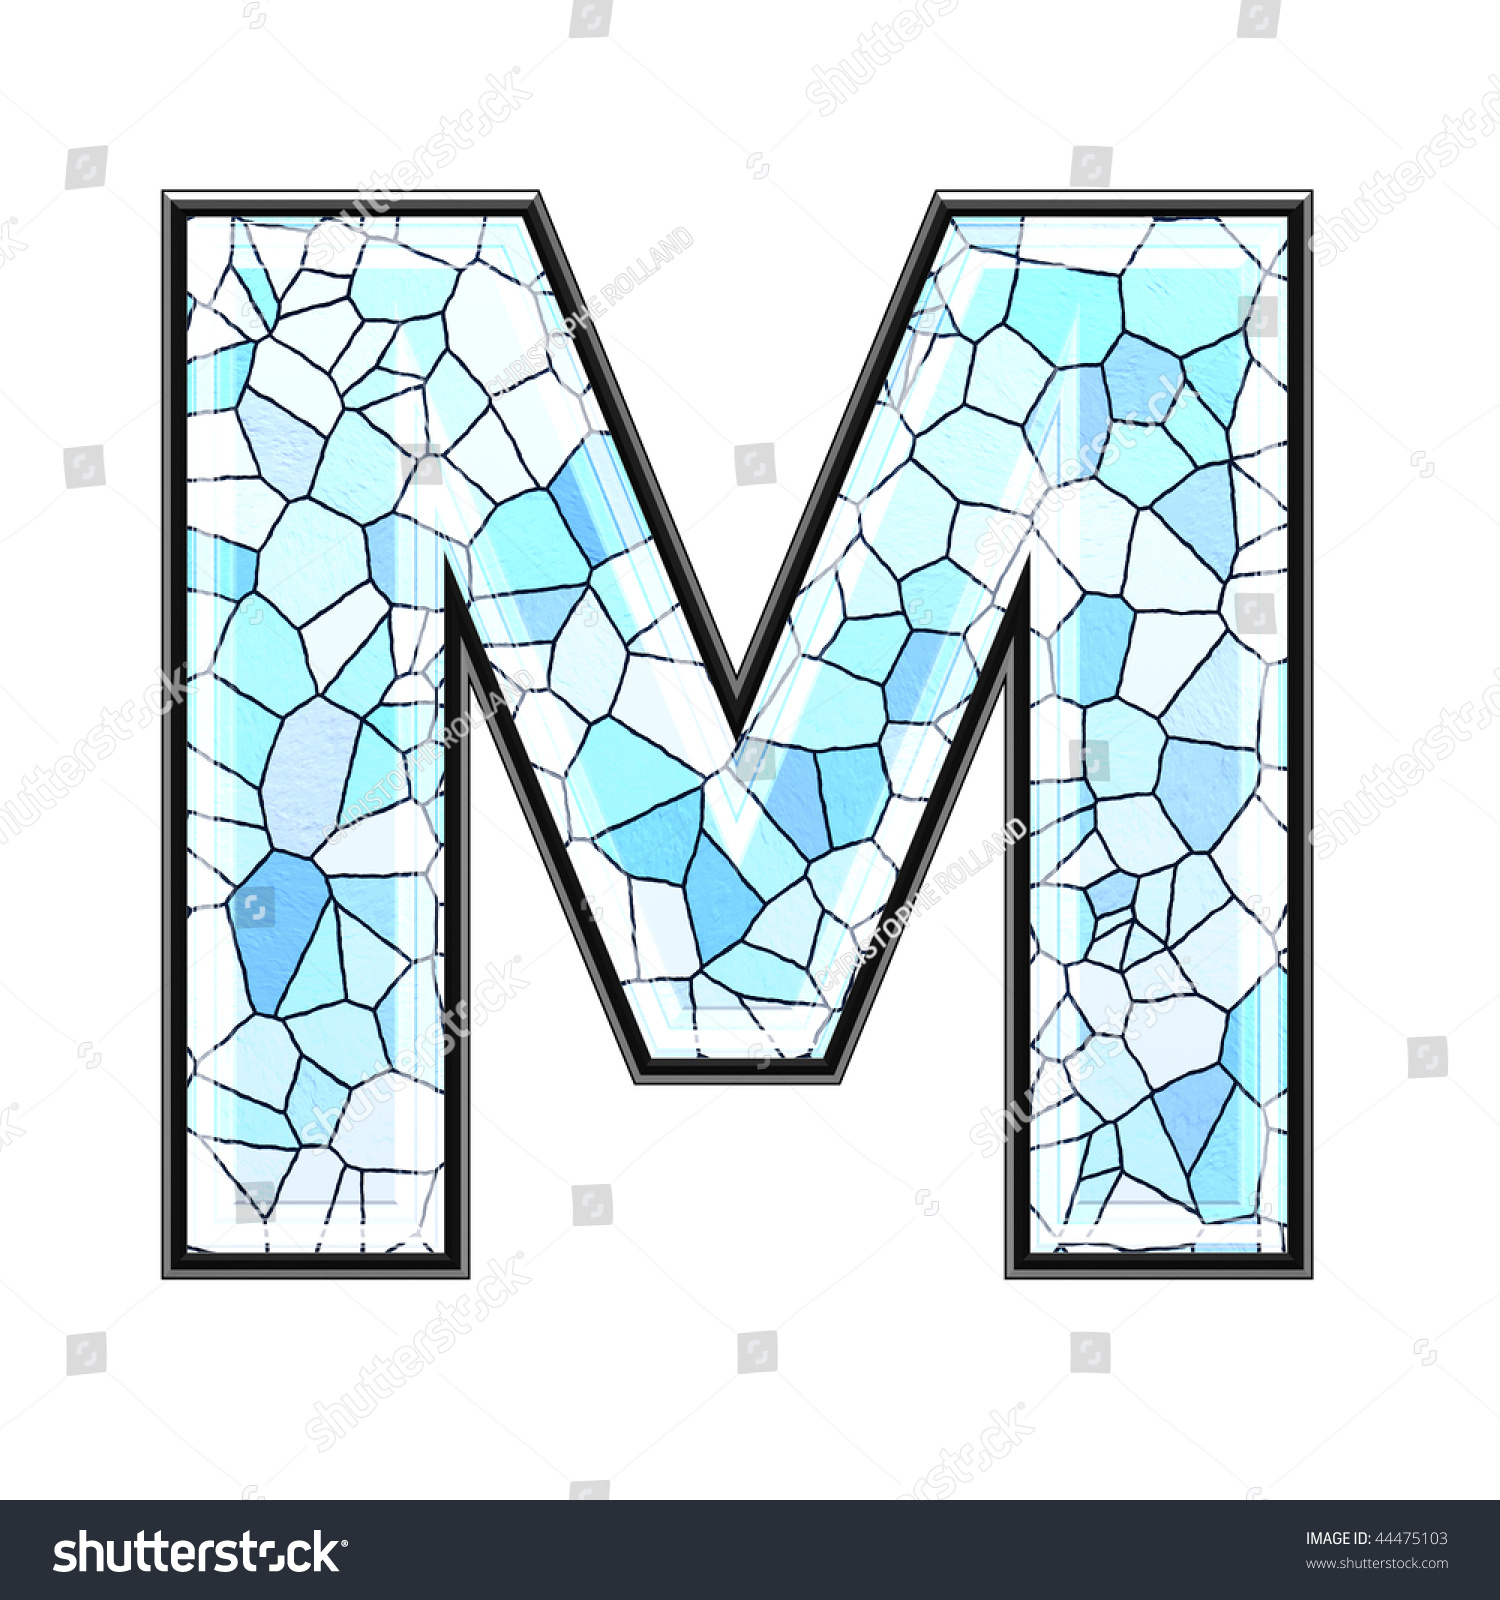 Ceramic tile letters gallery tile flooring design ideas ceramic tiles with letters choice image tile flooring design ideas ceramic tiles with letters gallery tile doublecrazyfo Gallery